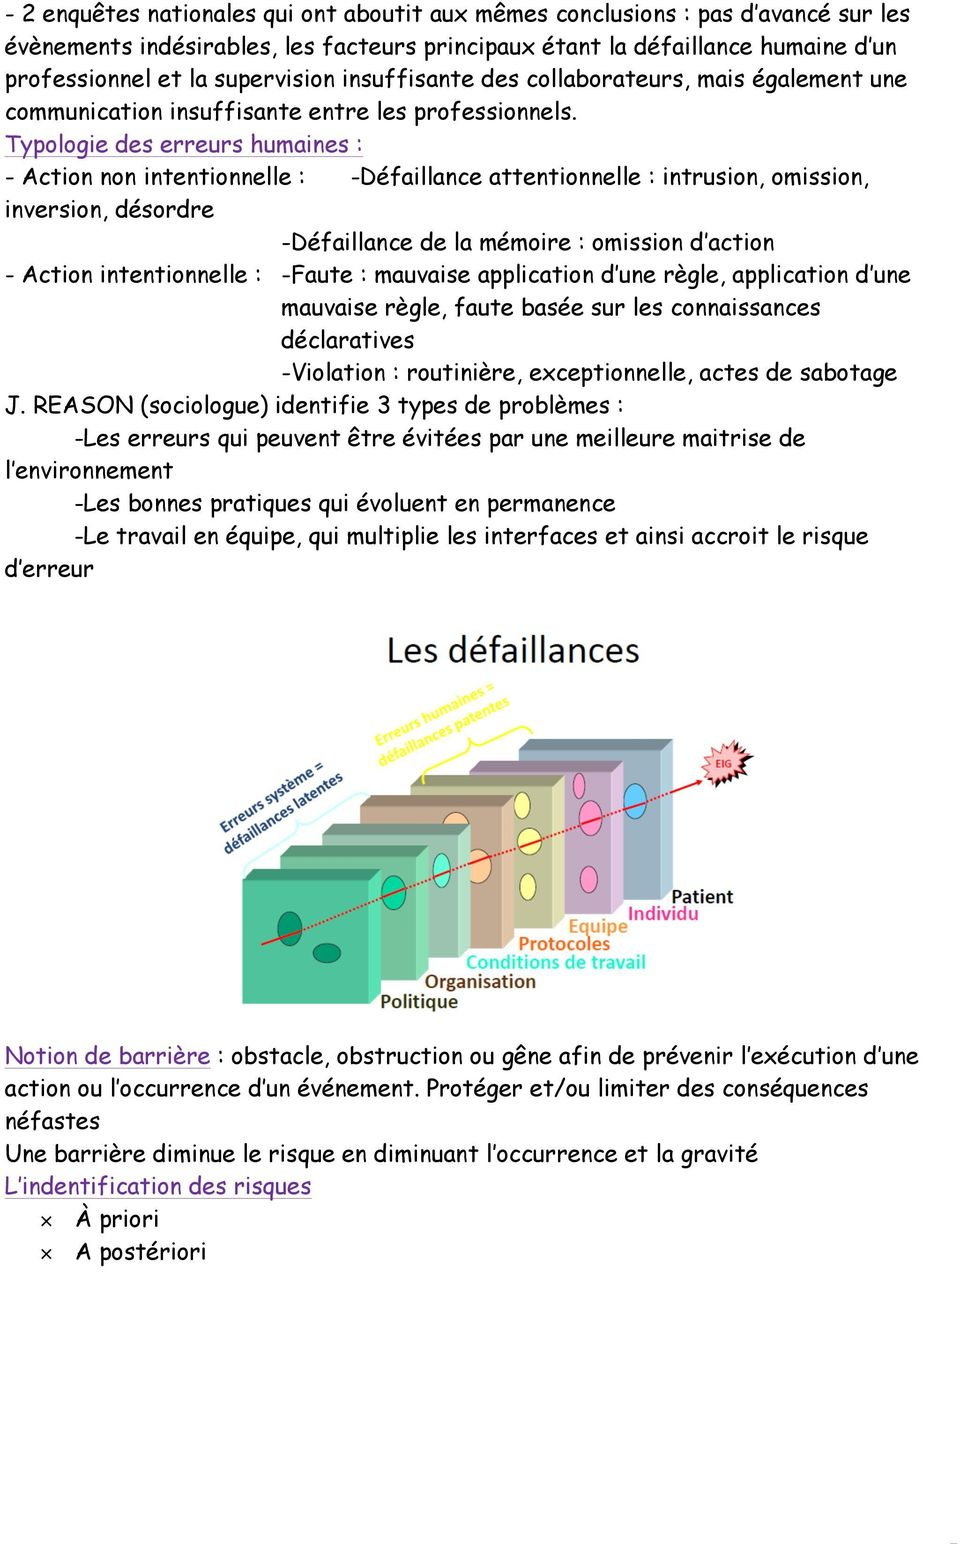 Typologie des erreurs humaines : - Action non intentionnelle : -Défaillance attentionnelle : intrusion, omission, inversion, désordre -Défaillance de la mémoire : omission d action - Action